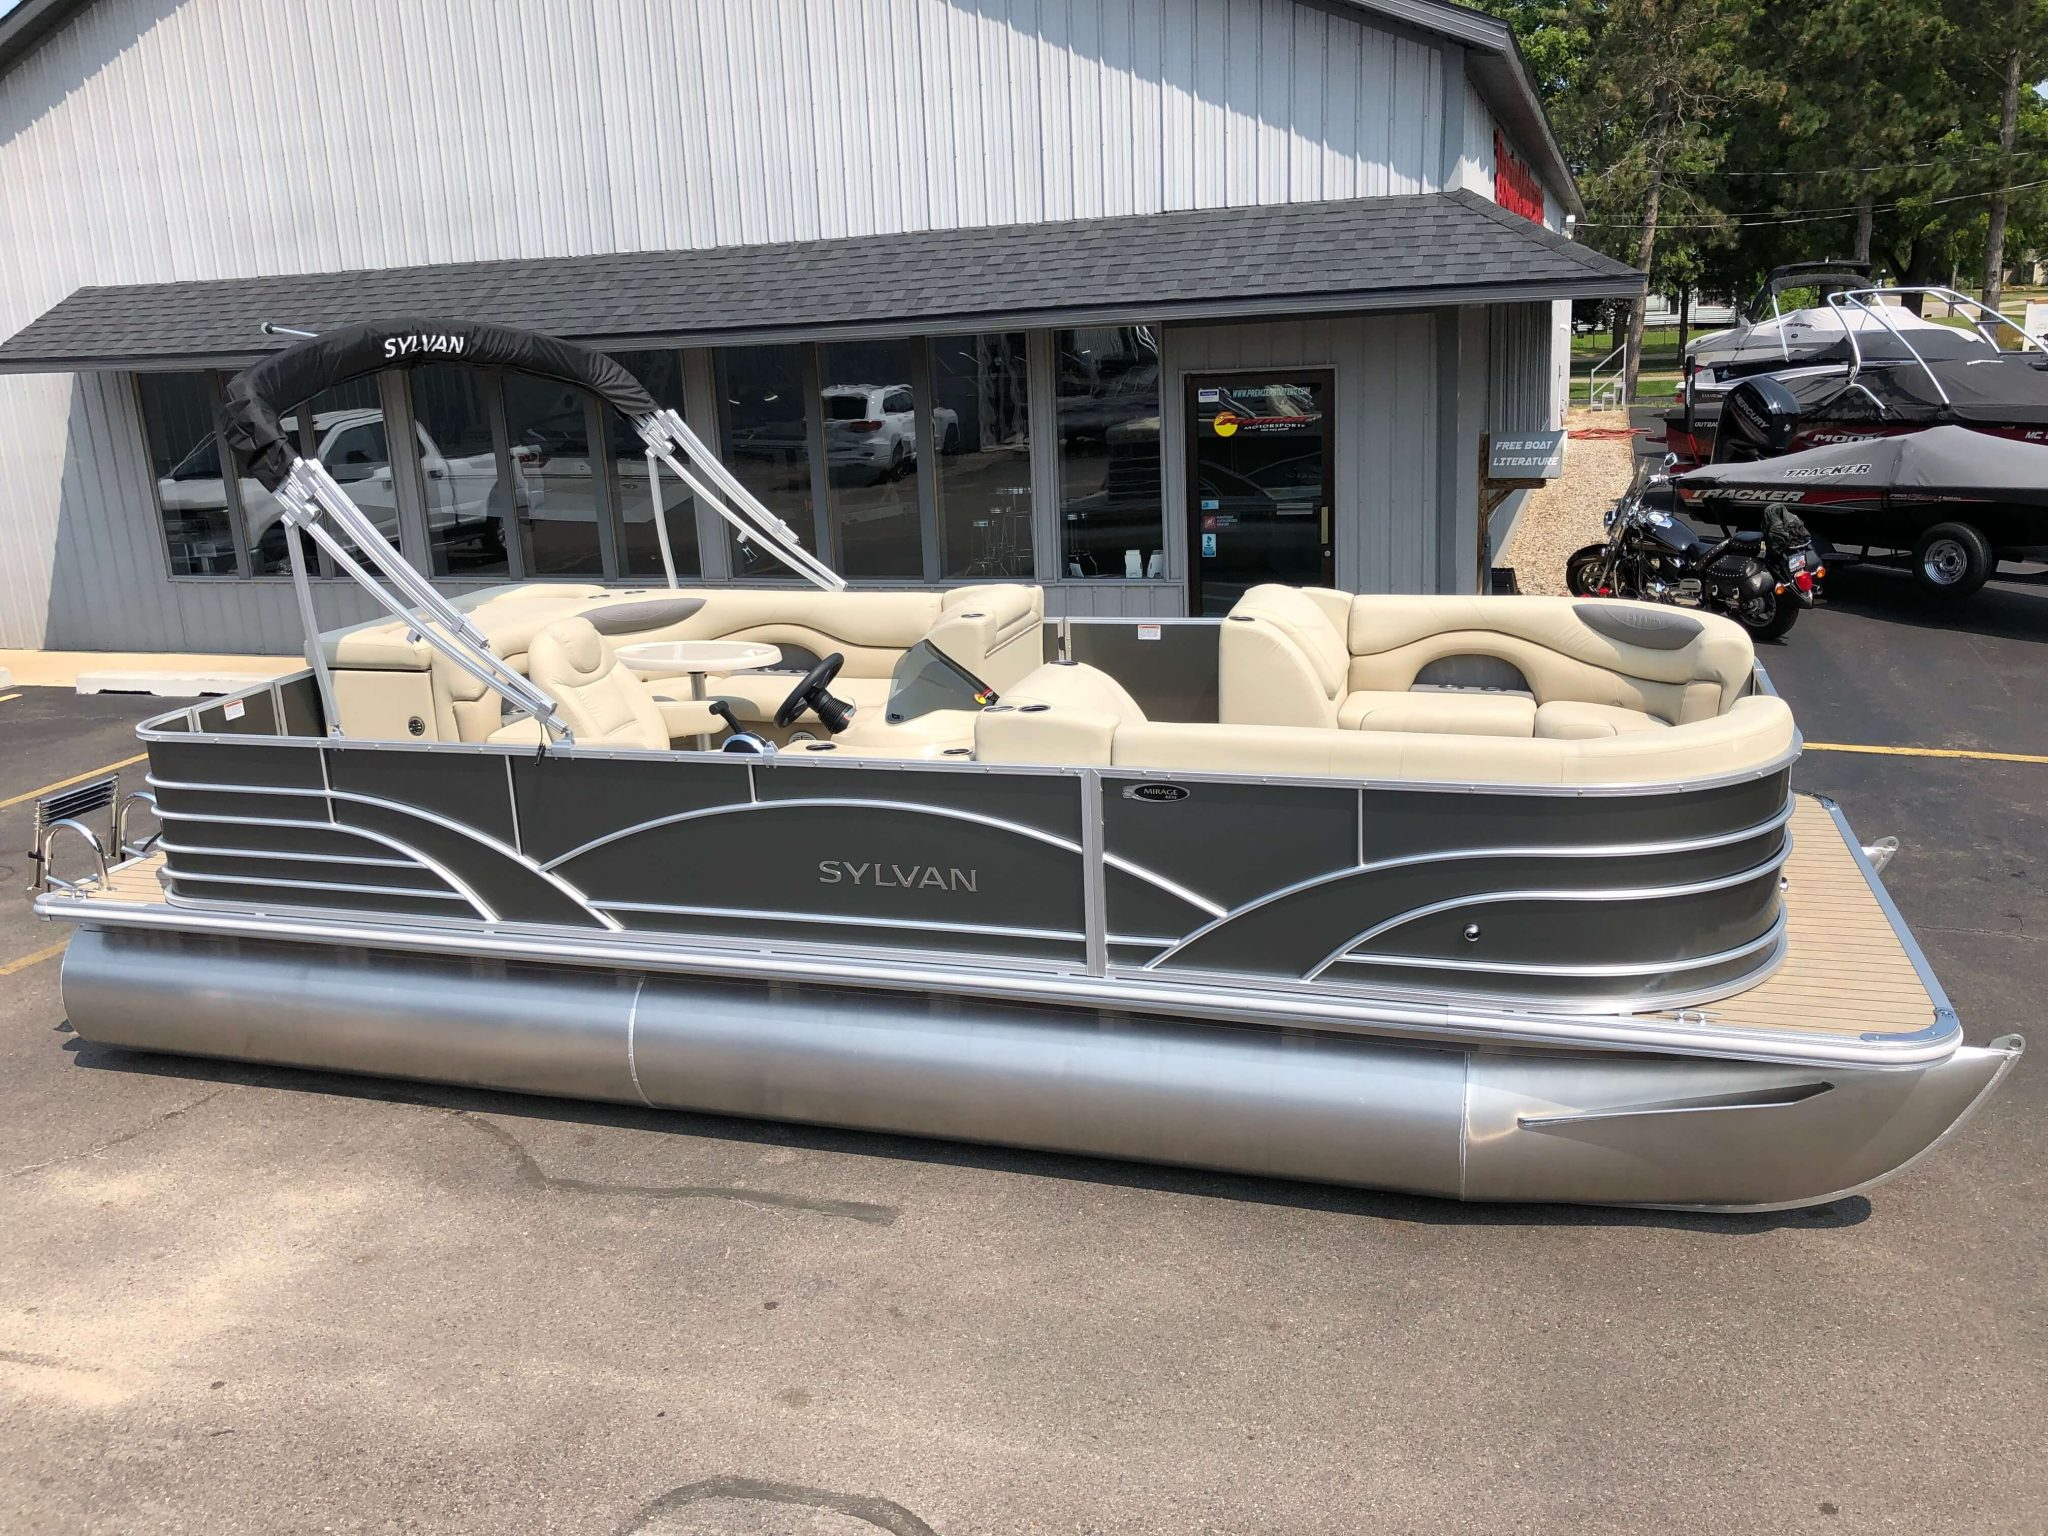 2019 Sylvan 8522 Cruise Carbon Pontoon Boat 1